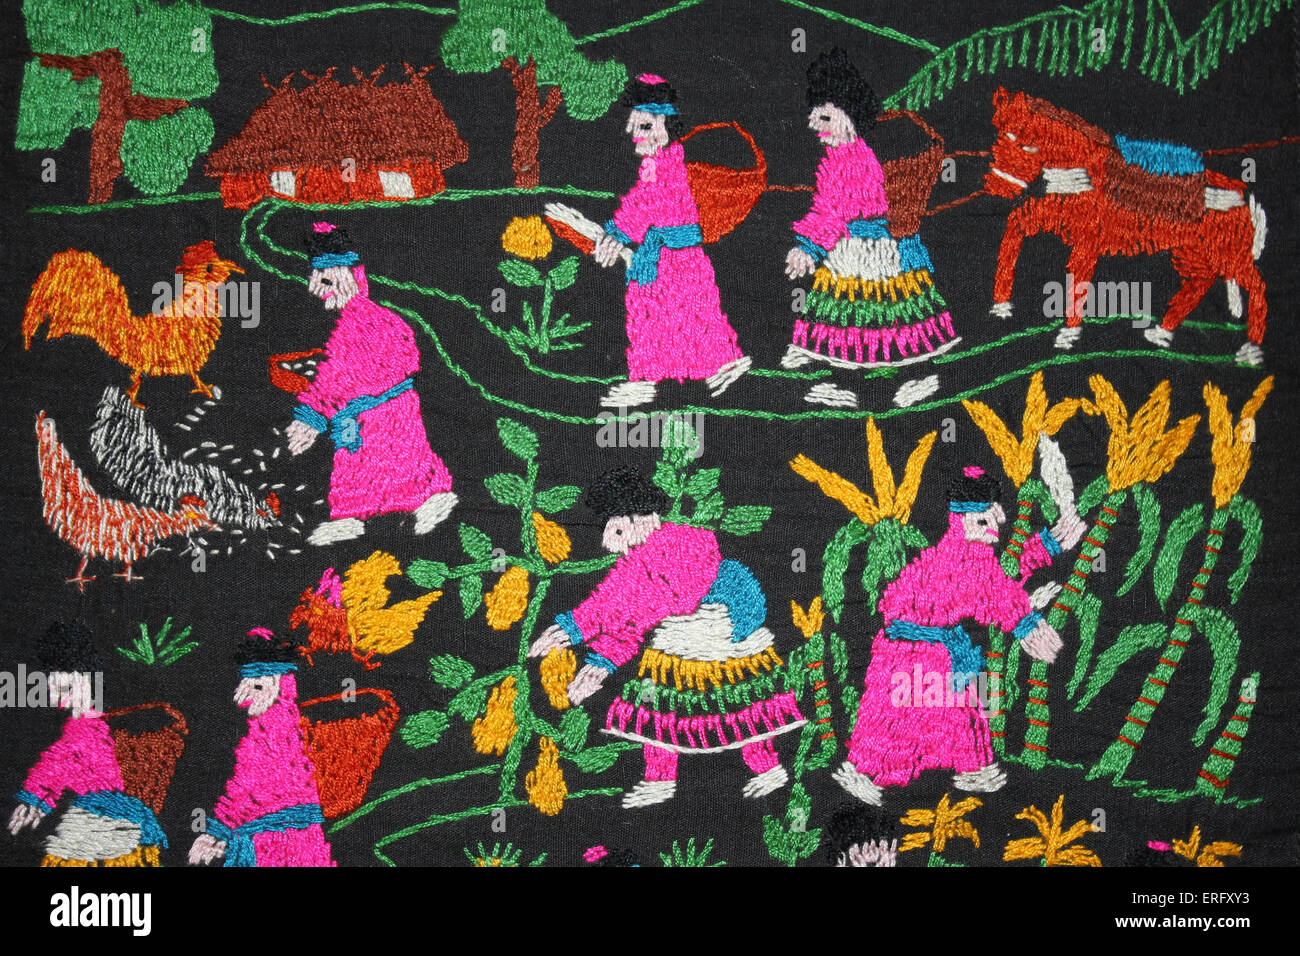 Traditional Embroidery of the Hmong Hill-tribe in Northern Thailand Depicting their Everyday Life Of Farming Stock Photo